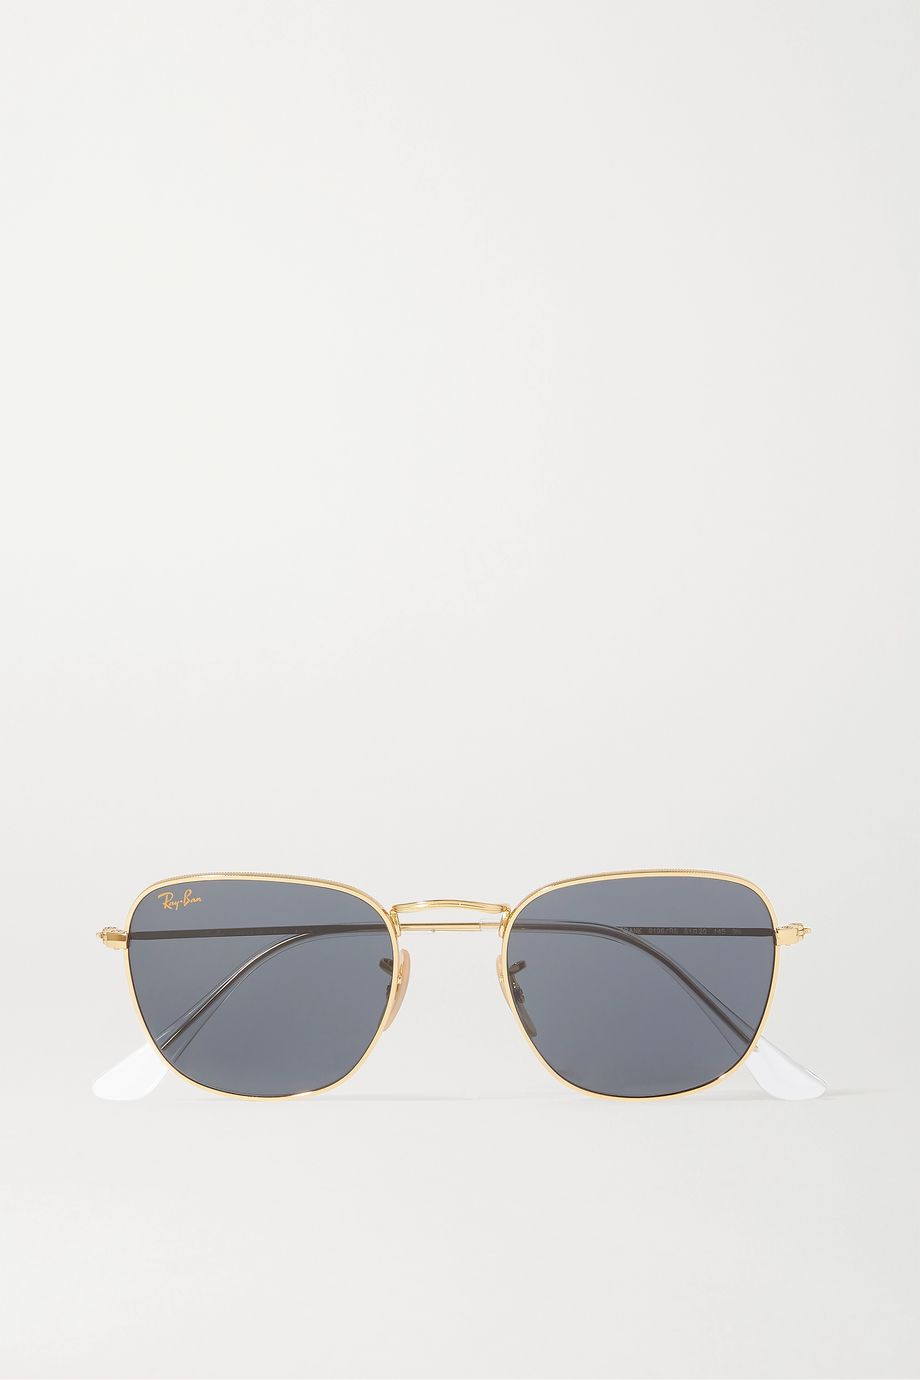 Ray-Ban Frank Legend square-frame gold-tone sunglasses